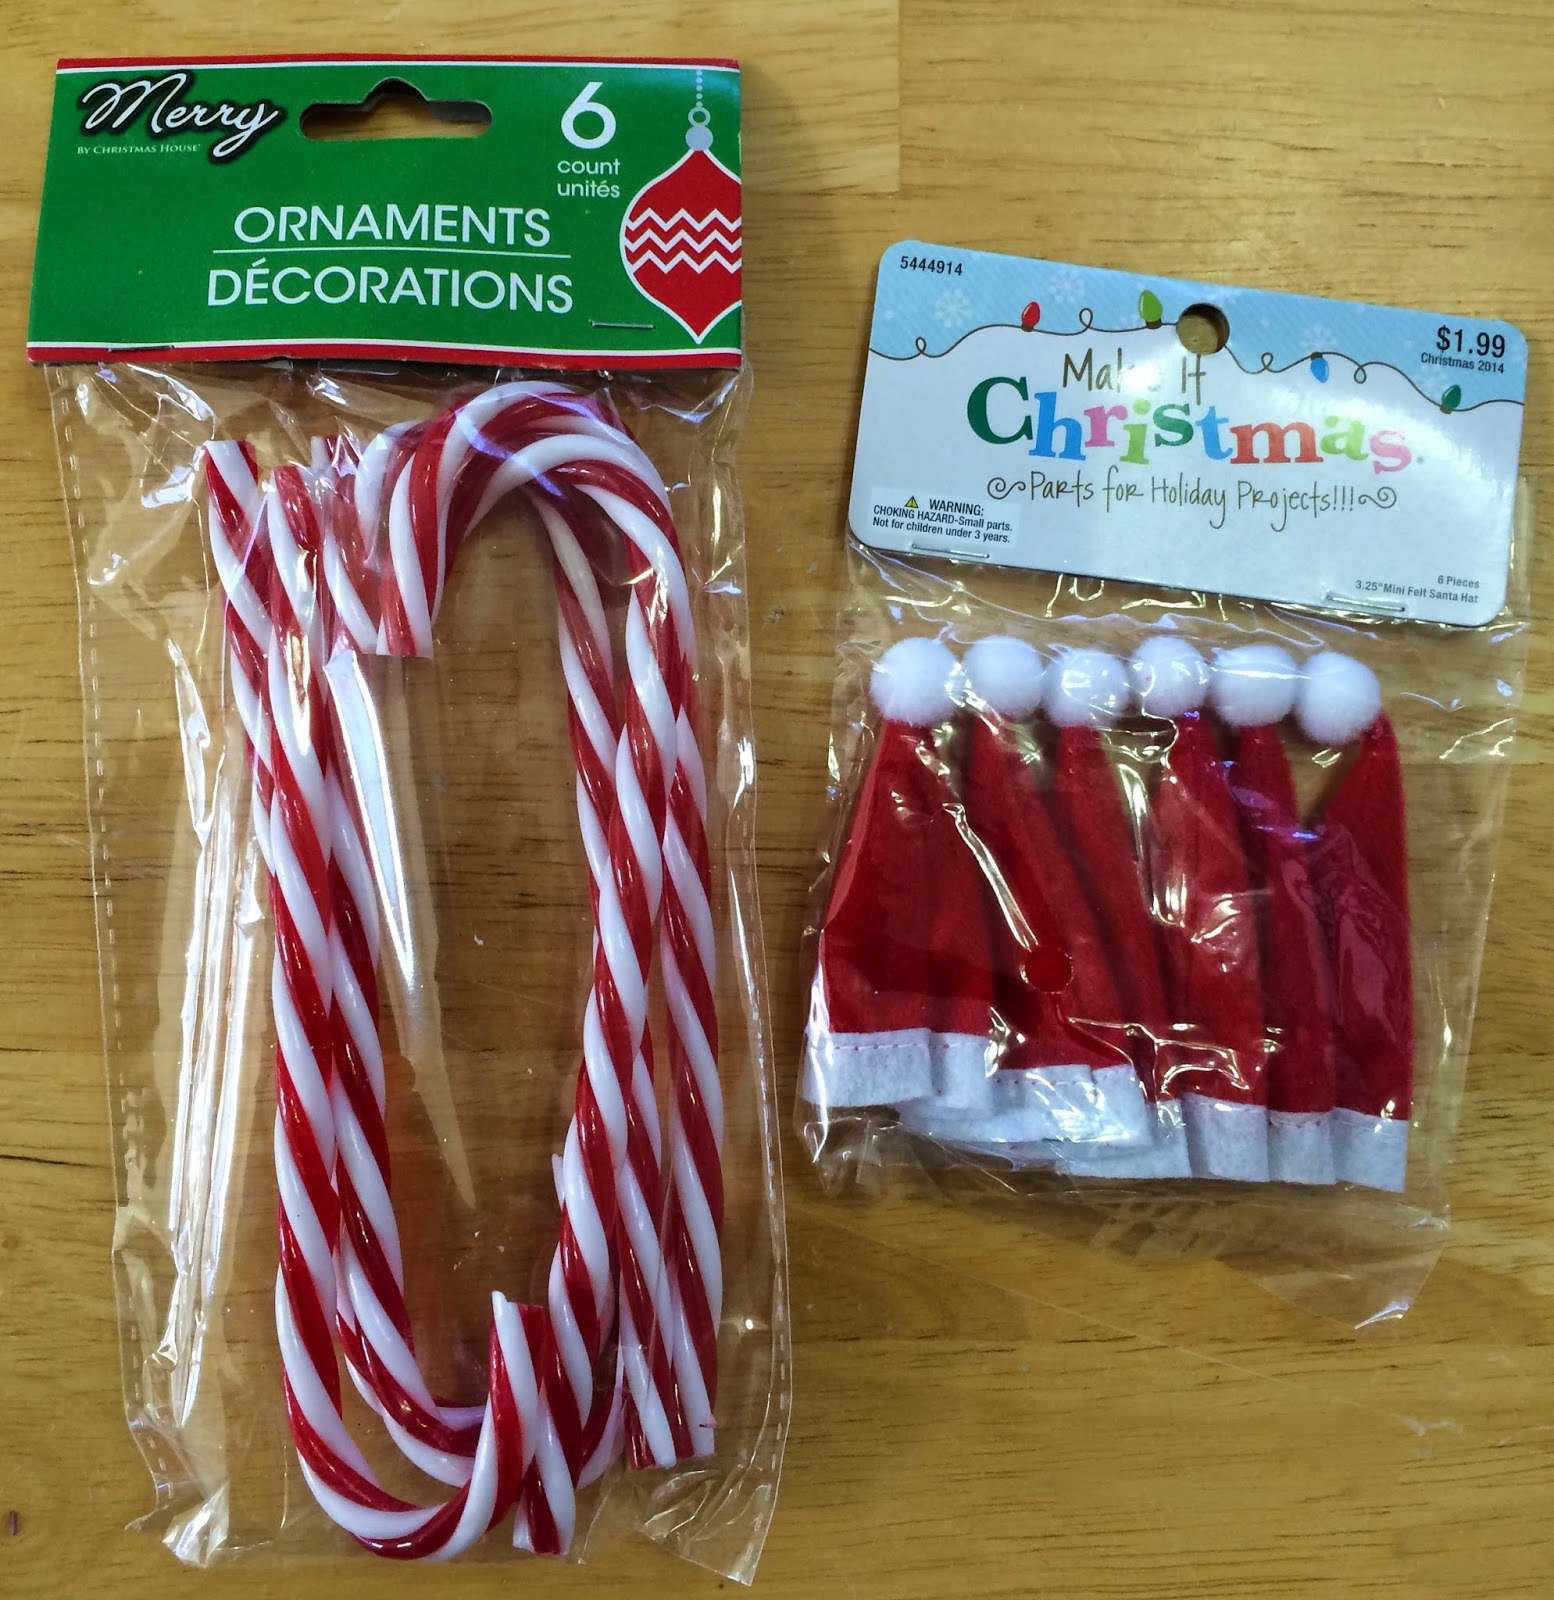 i found the candy canes at dollar tree and the hats at hobby lobby - Candy Christmas Decorations Hobby Lobby